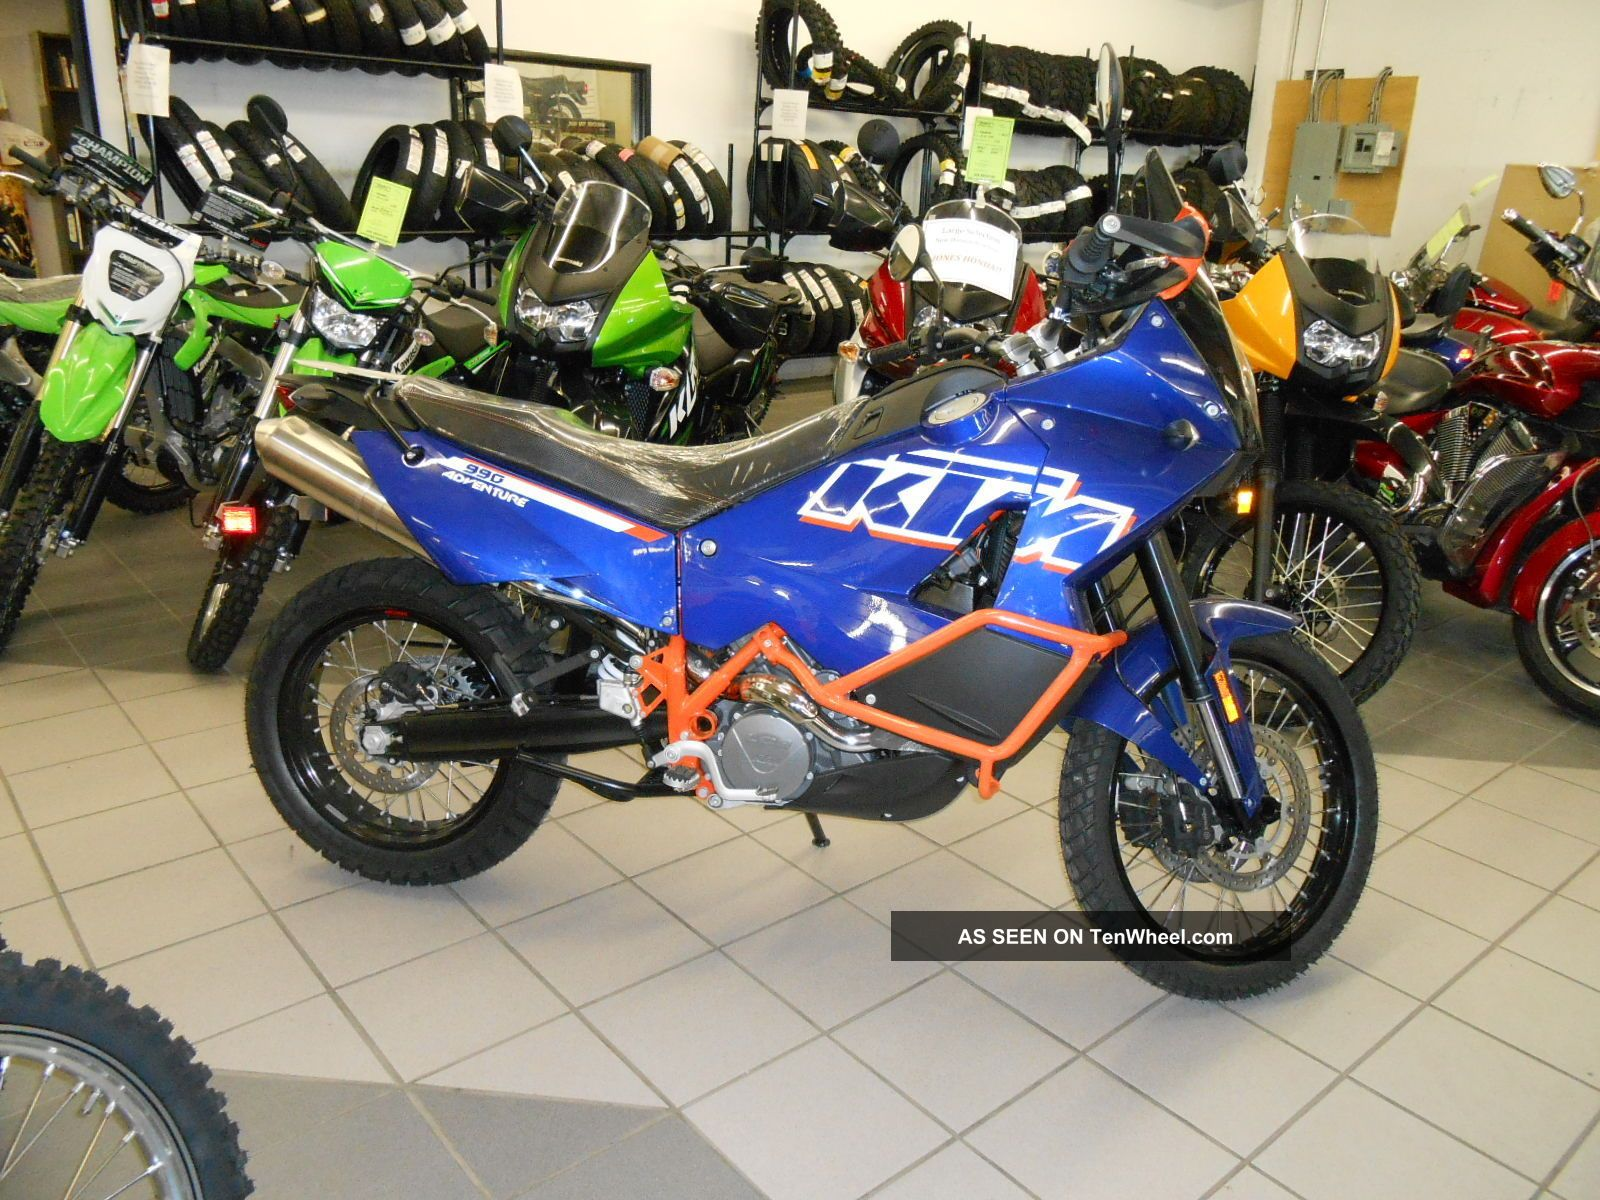 2012 Ktm Adventure 990 With Abs Never Serviced Adventure photo